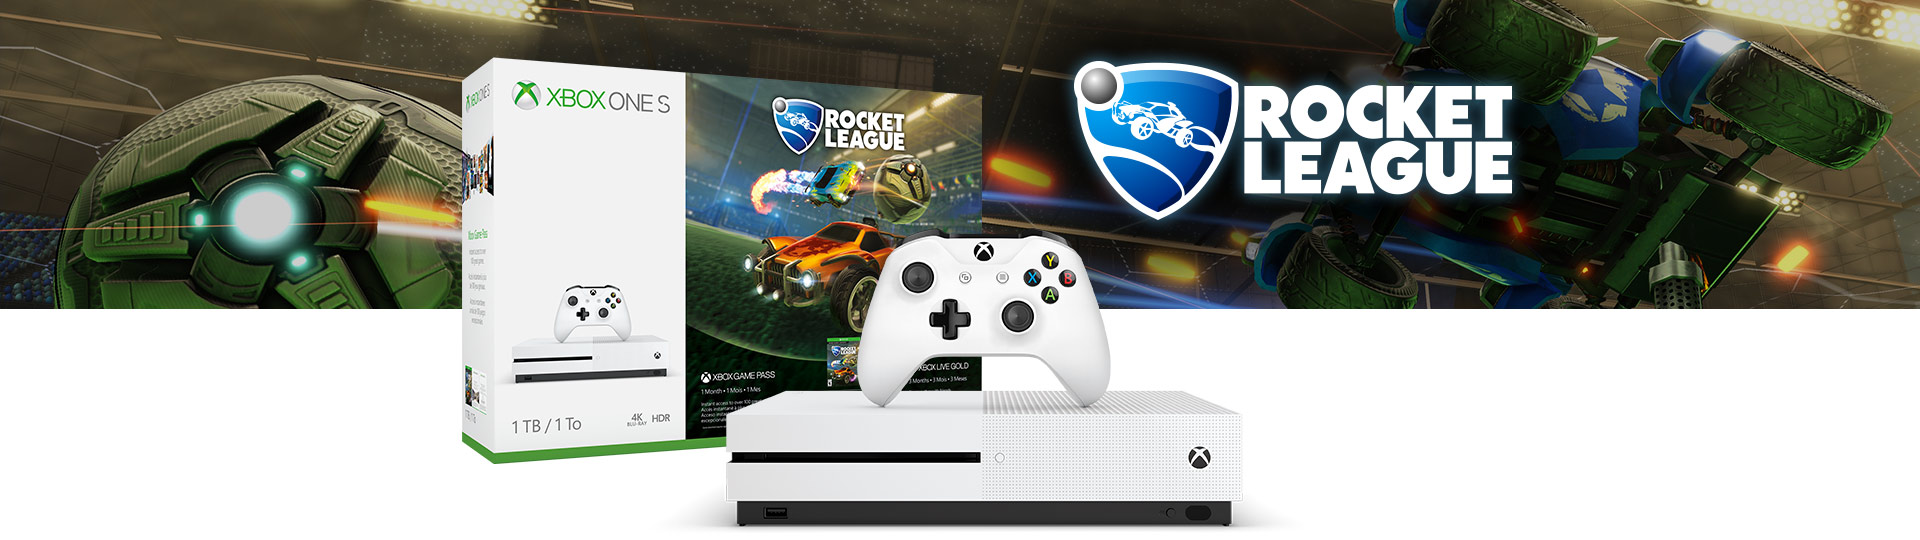 Xbox One S Rocket League Blast-Off -konsolipaketti 1 teratavu